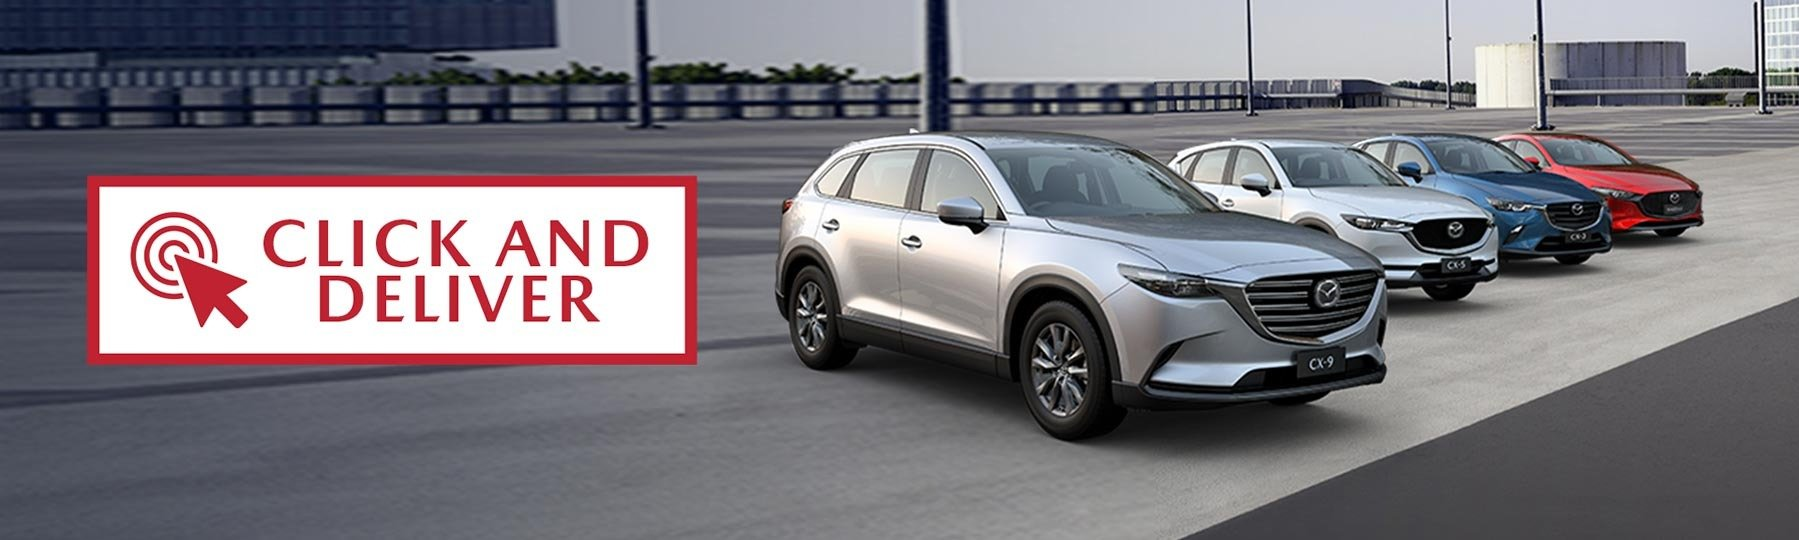 Gympie Mazda - Click and Deliver